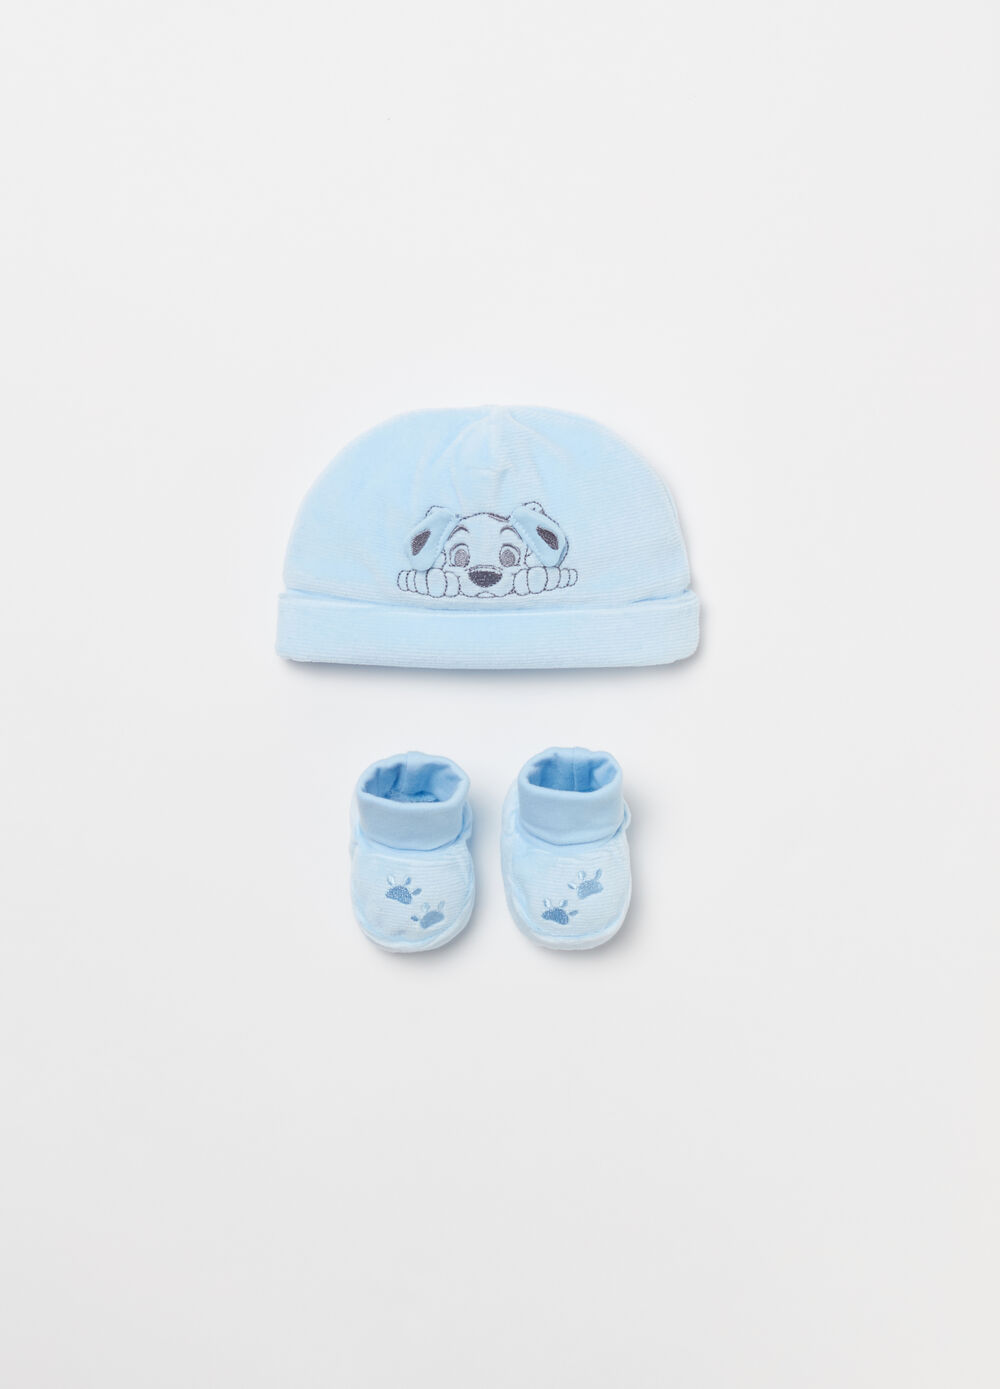 BCI Disney hat and shoes set